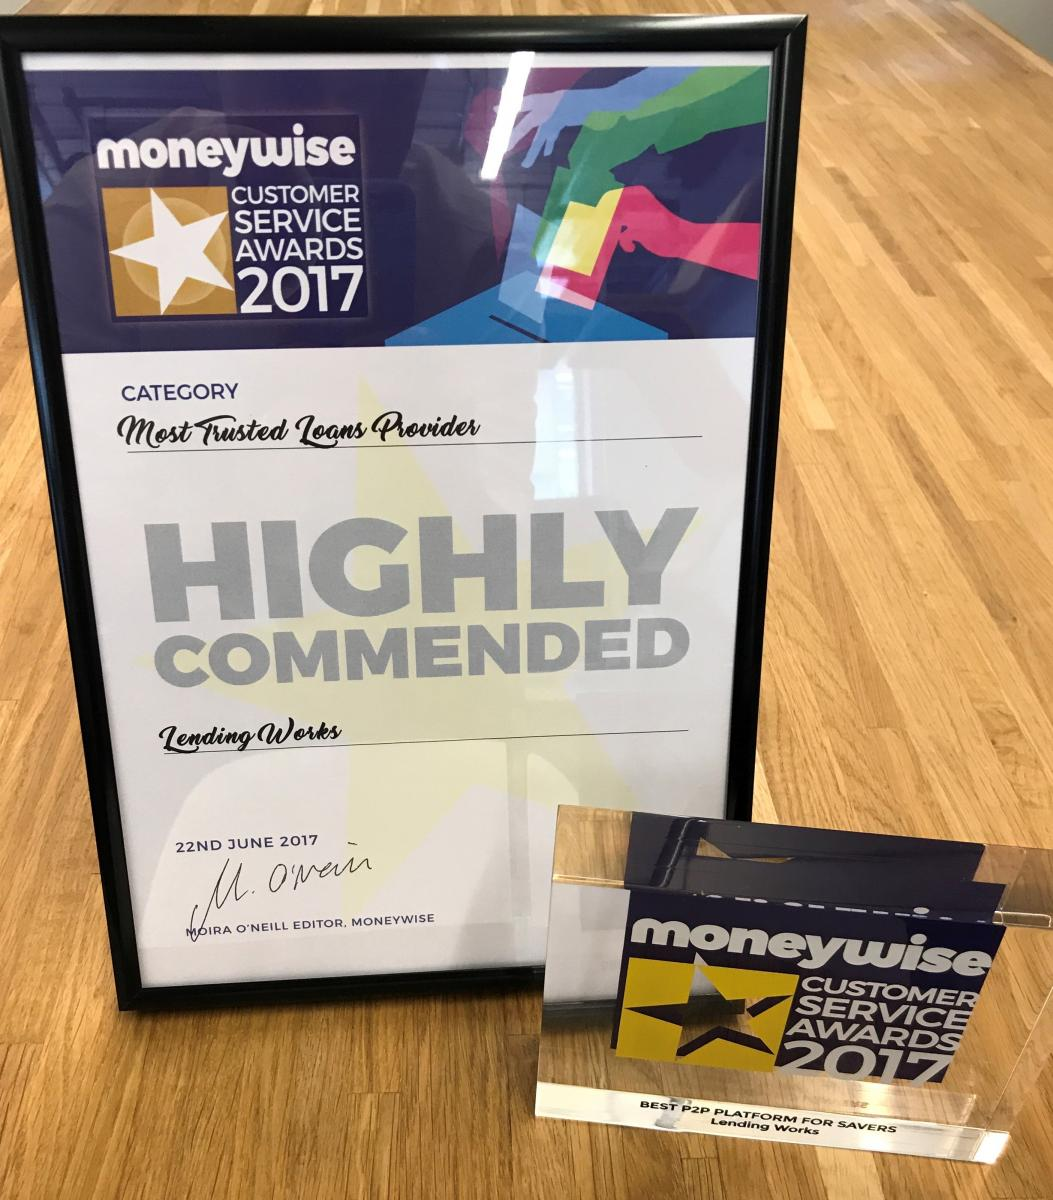 Our haul from the Moneywise Customer Service Awards